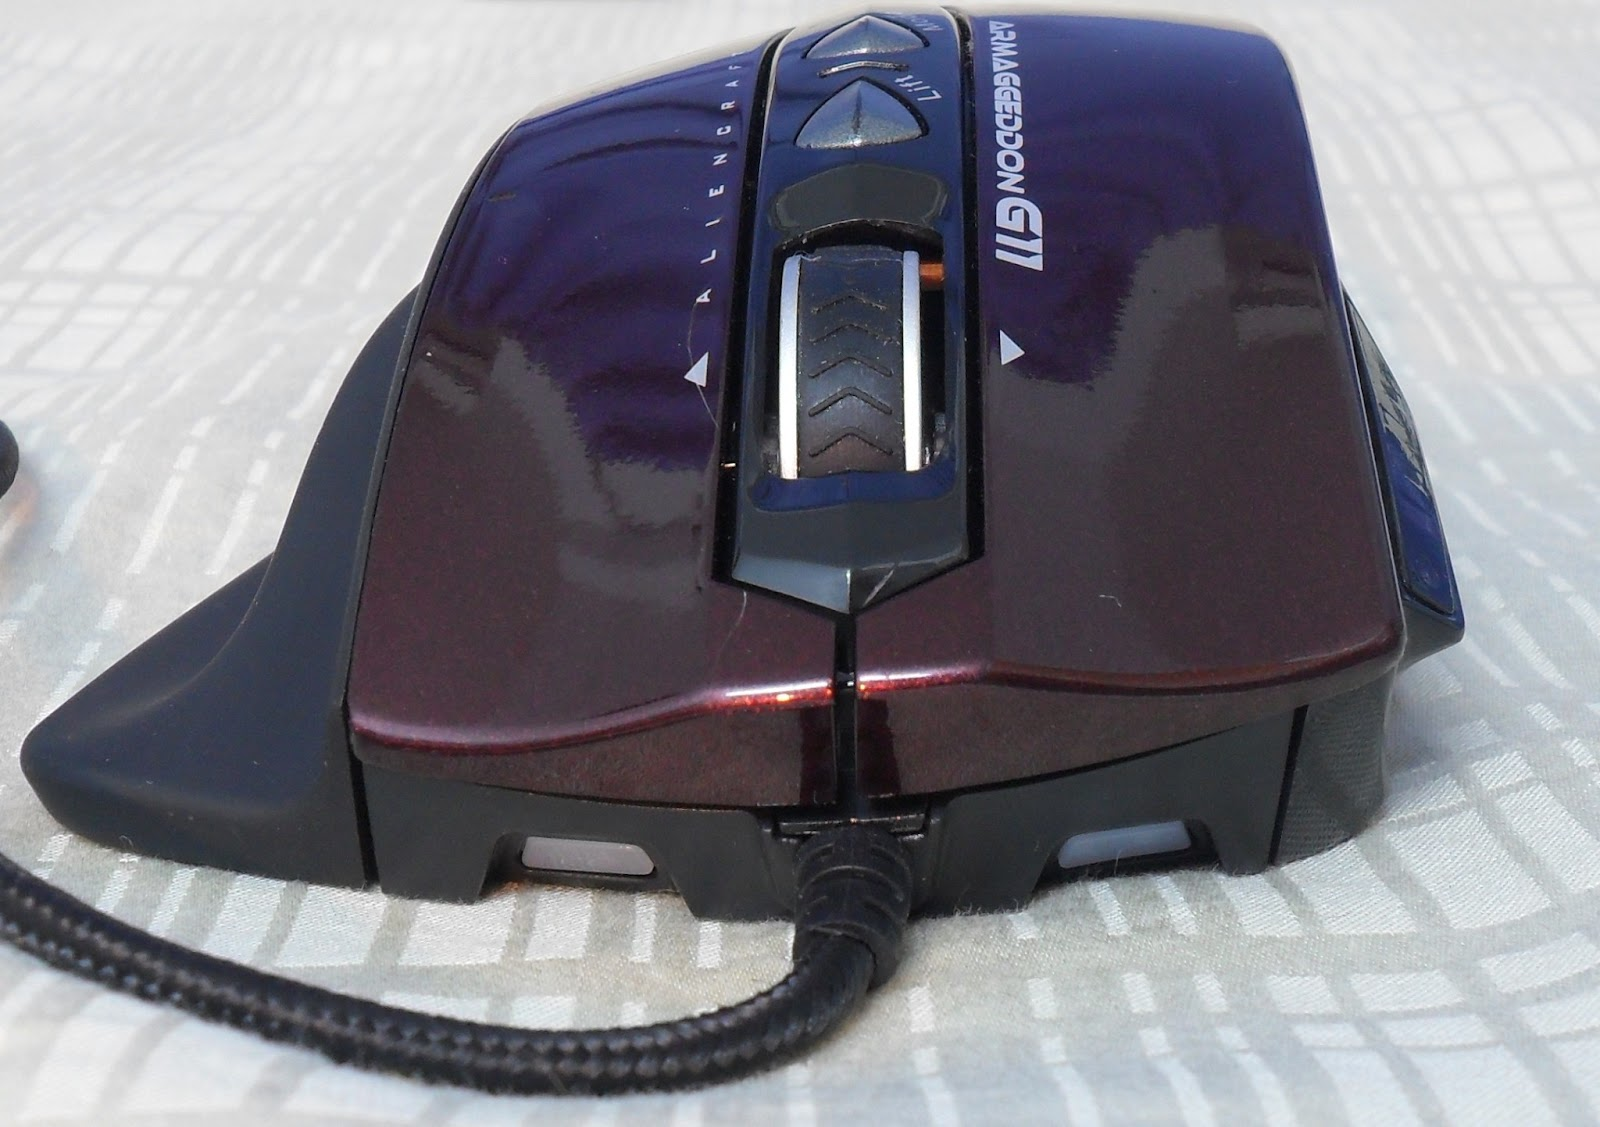 Unboxing & Review: Armaggeddon G11 Alien Craft Gaming Mouse 70